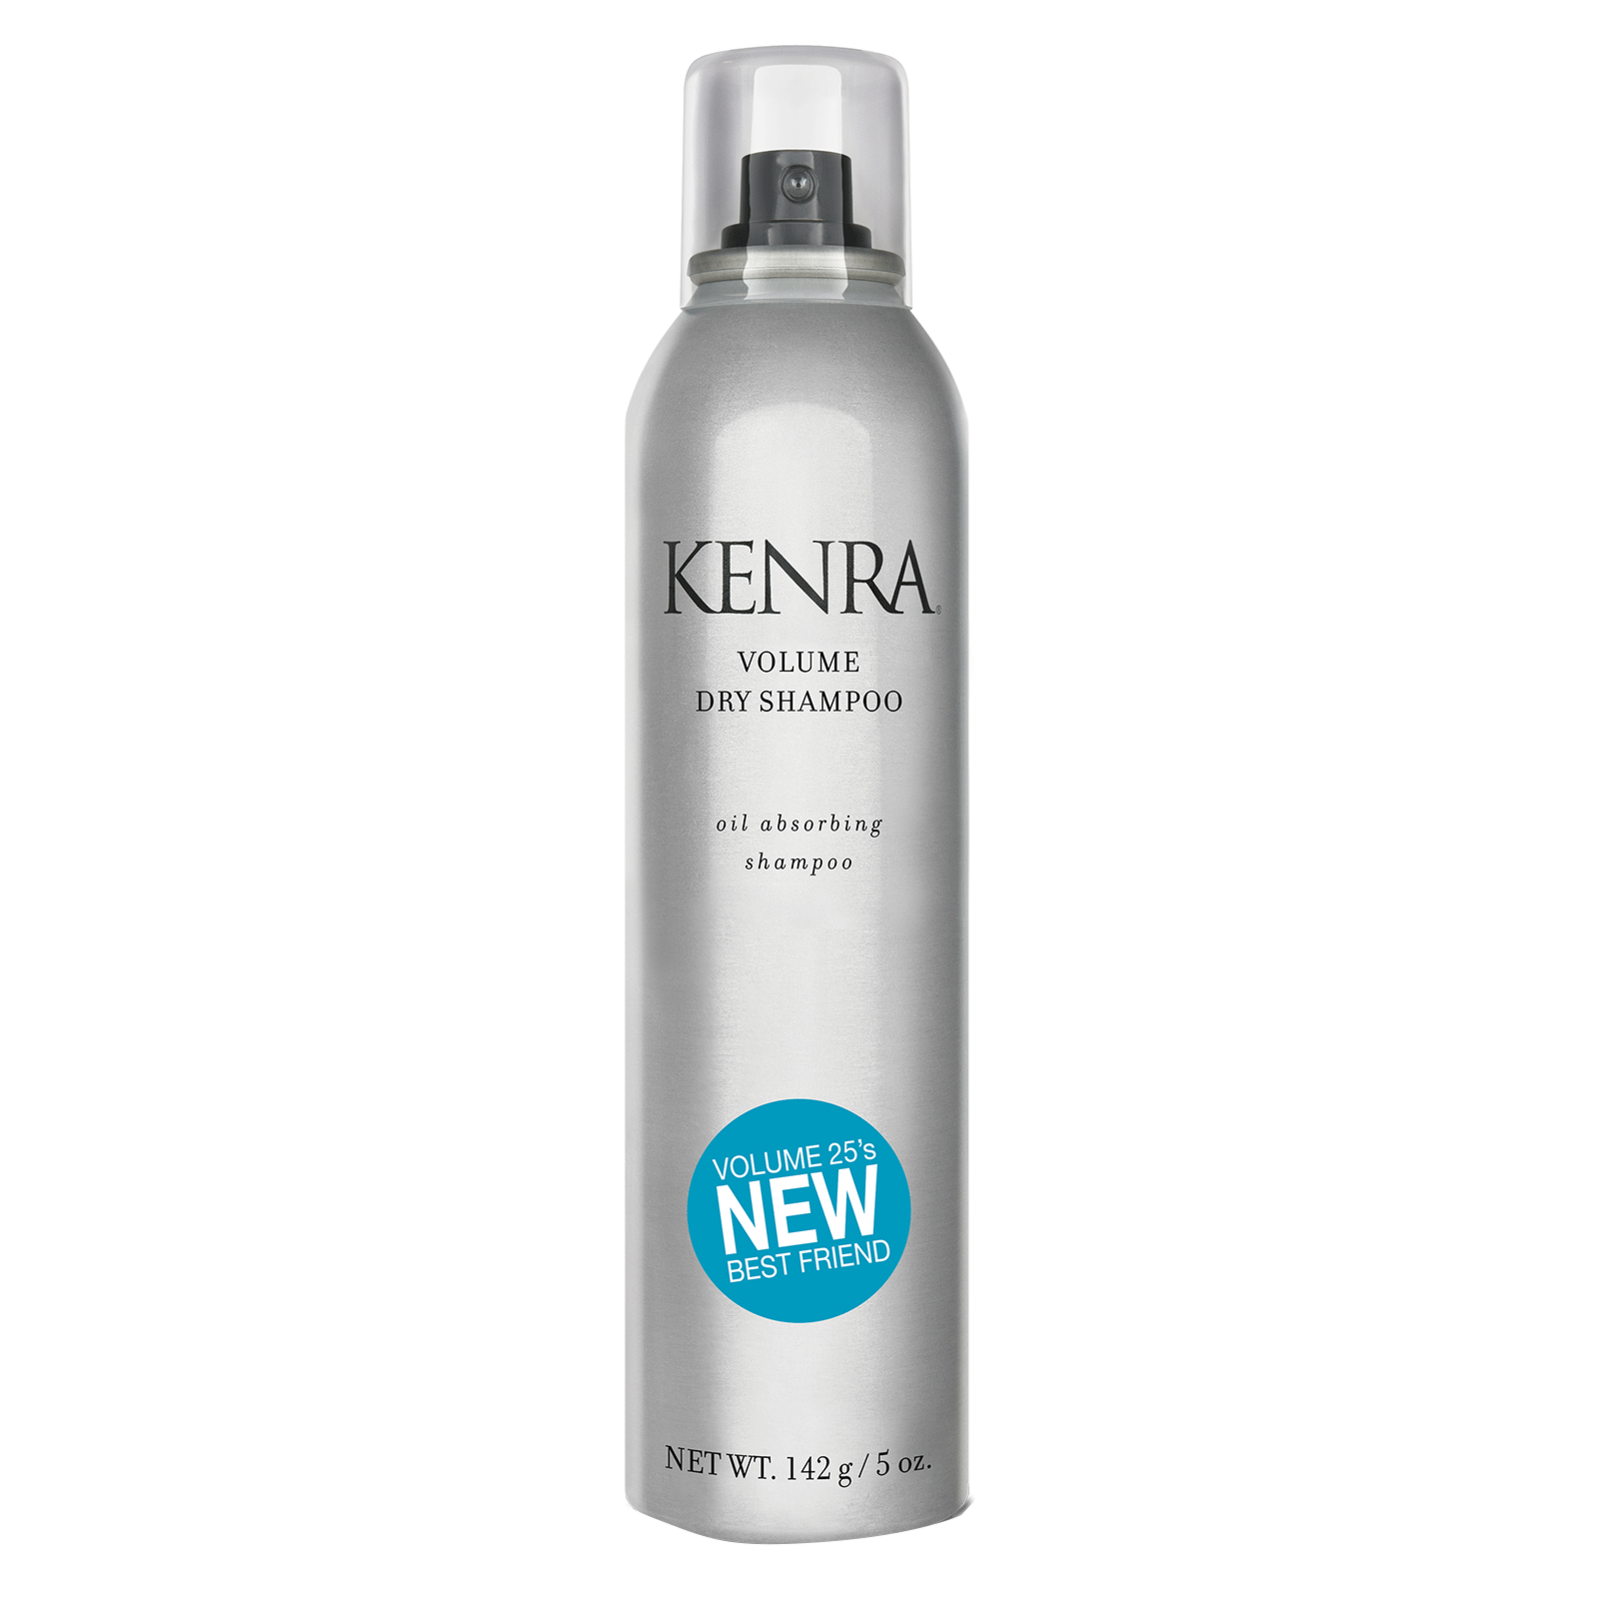 Primary image for Kenra Volume Dry Shampoo 5oz